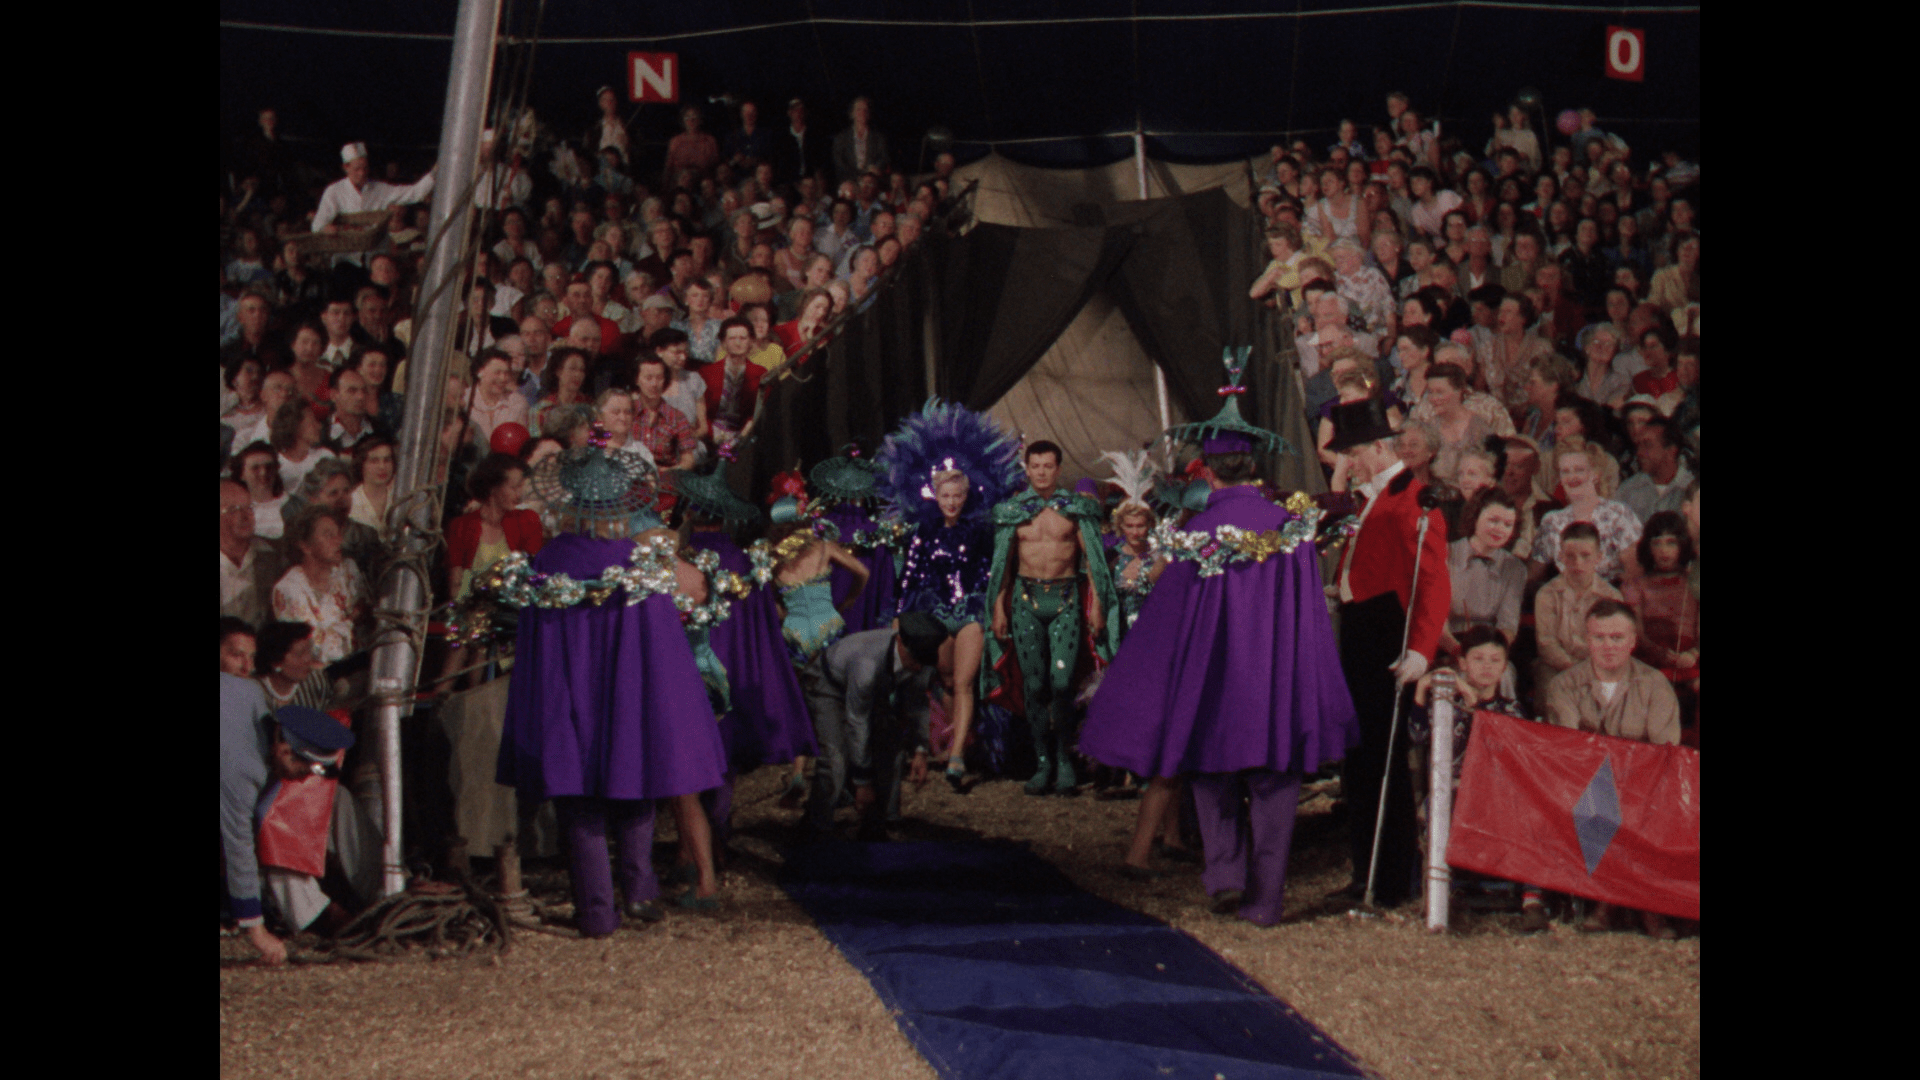 The Greatest Show on Earth (1952) [Paramount Presents Blu-ray review] 8